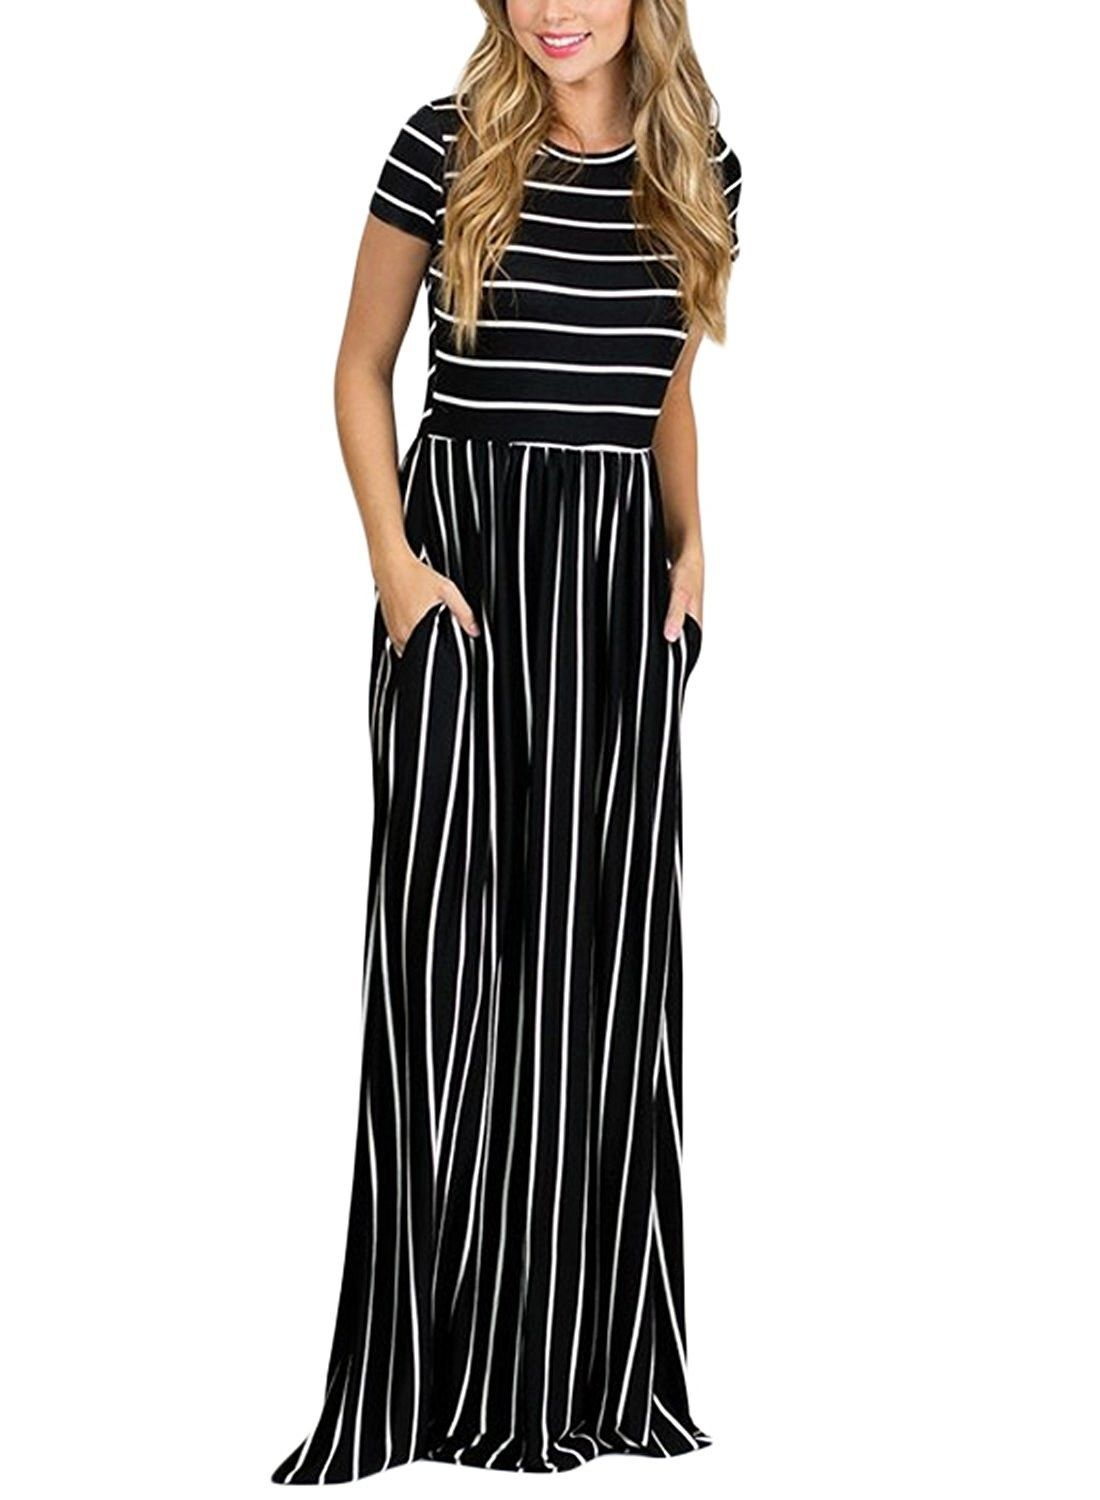 32 Of The Best Maxi Dresses You Can Get On Amazon Maxi Dress Pocket Maxi Dress Short Sleeve Maxi Dresses [ 1500 x 1100 Pixel ]